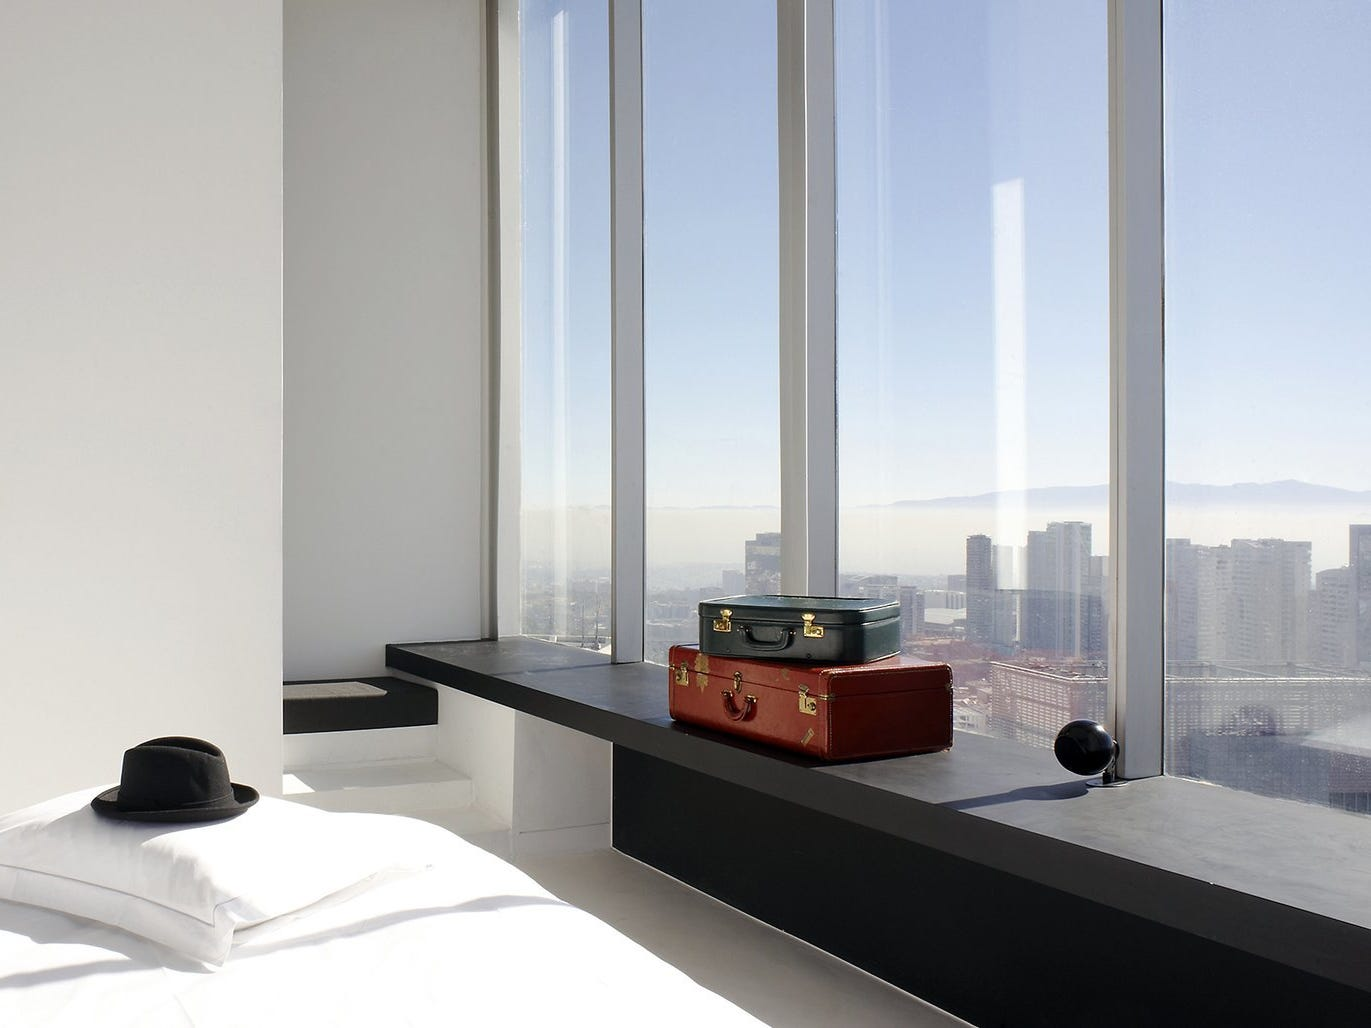 Minimalist glamour in the form of fine finishes, tall ceilings, large windows and white walls is found at the Distrito Capital Hotel in Mexico City's skyscraper district, Santa Fe.